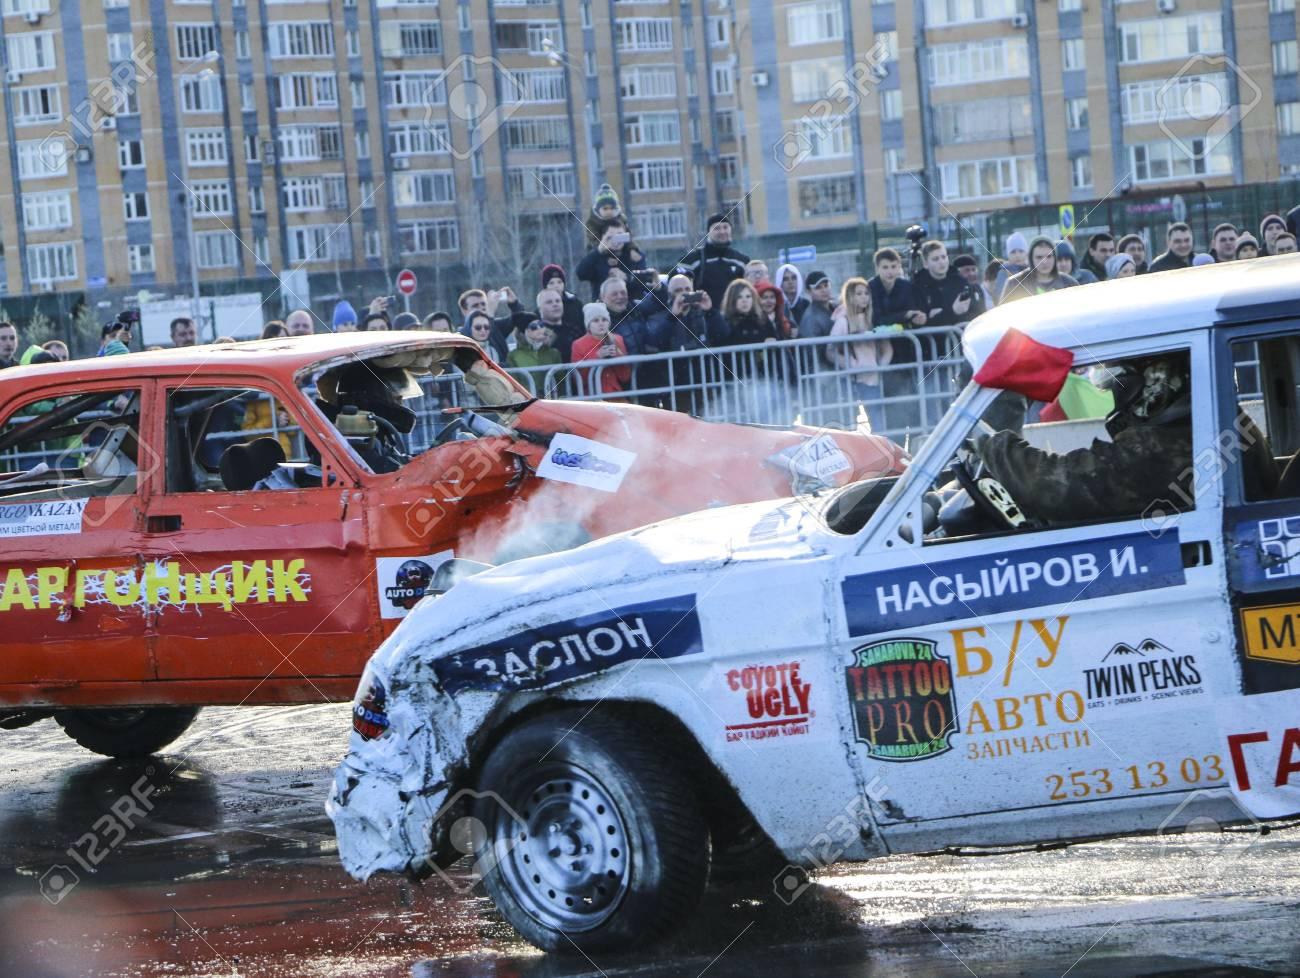 KAZAN, RUSSIA - APRIL 29, 2018: Cars and drivers in small arena